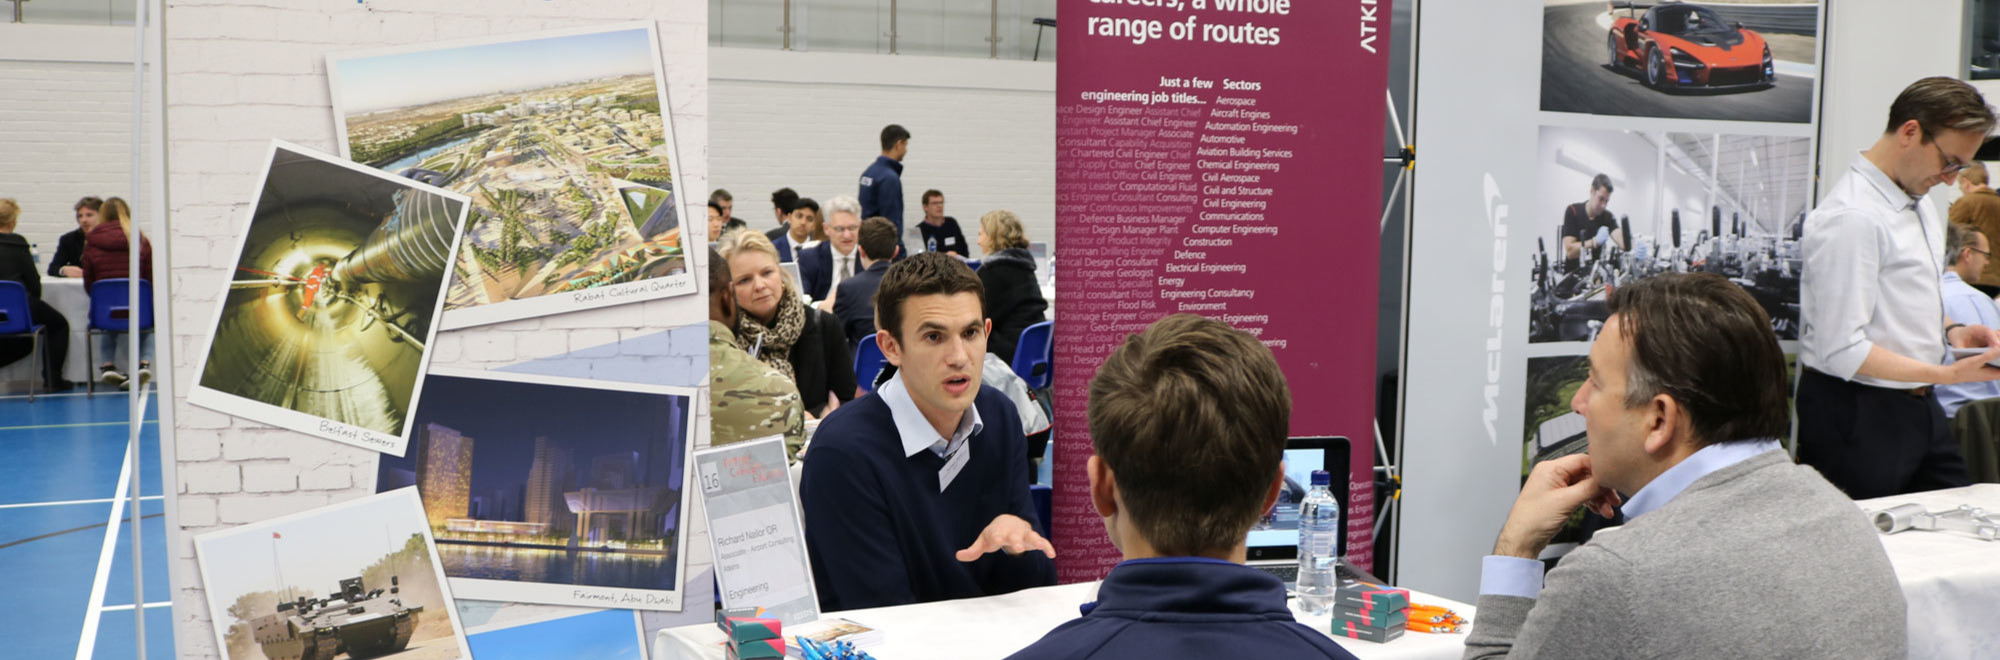 Higher Education & Careers Guidance